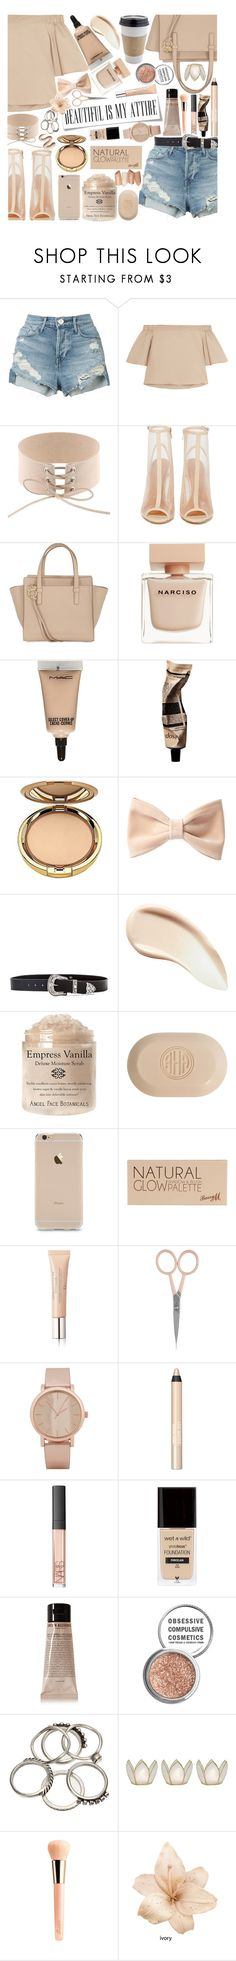 """""""Difficult roads often lead to beautiful destinations"""" by xcuteniallx ❤ liked on Polyvore featuring 3x1, TIBI, Shoe Cult, Salvatore Ferragamo, Narciso Rodriguez, MAC Cosmetics, Aesop, Milani, Forever 21 and B-Low the Belt"""